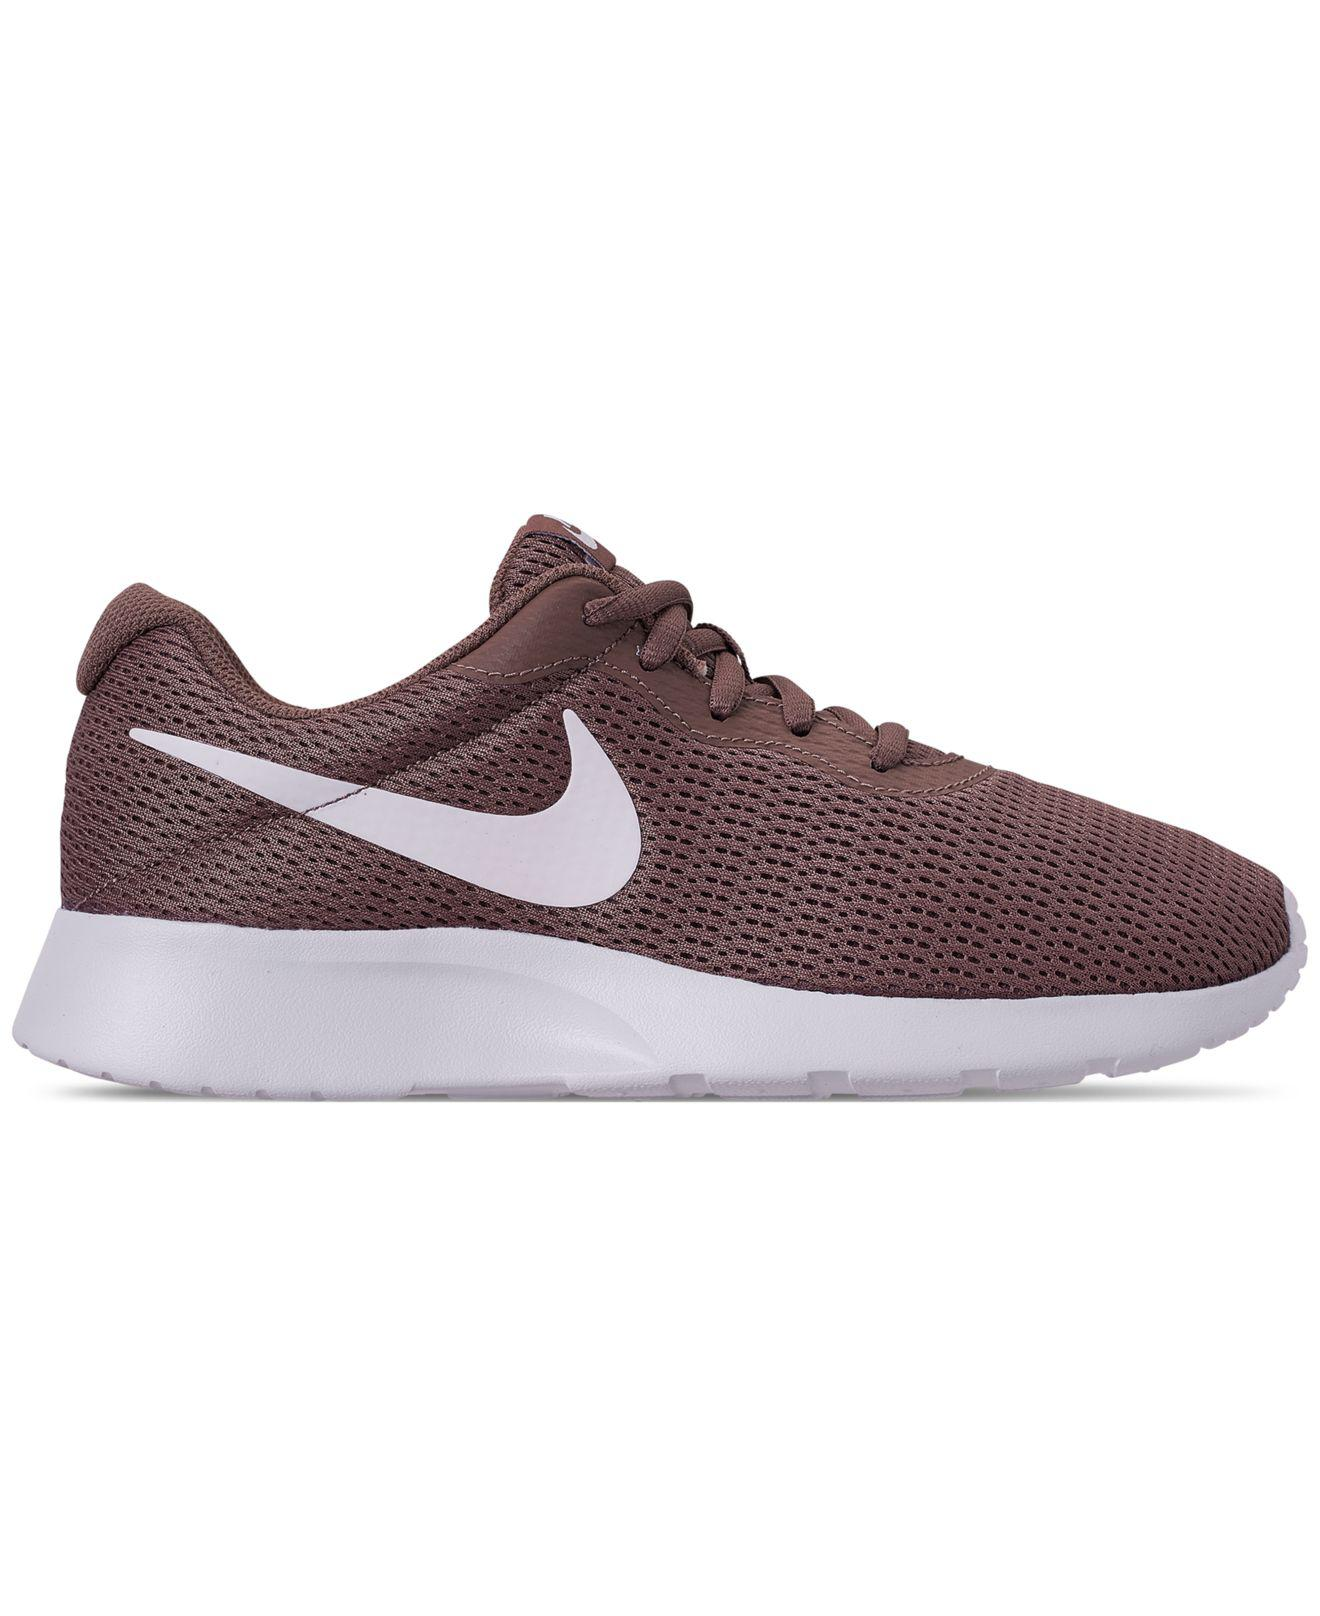 Lyst - Nike Tanjun Casual Sneakers From Finish Line e5d1c304a